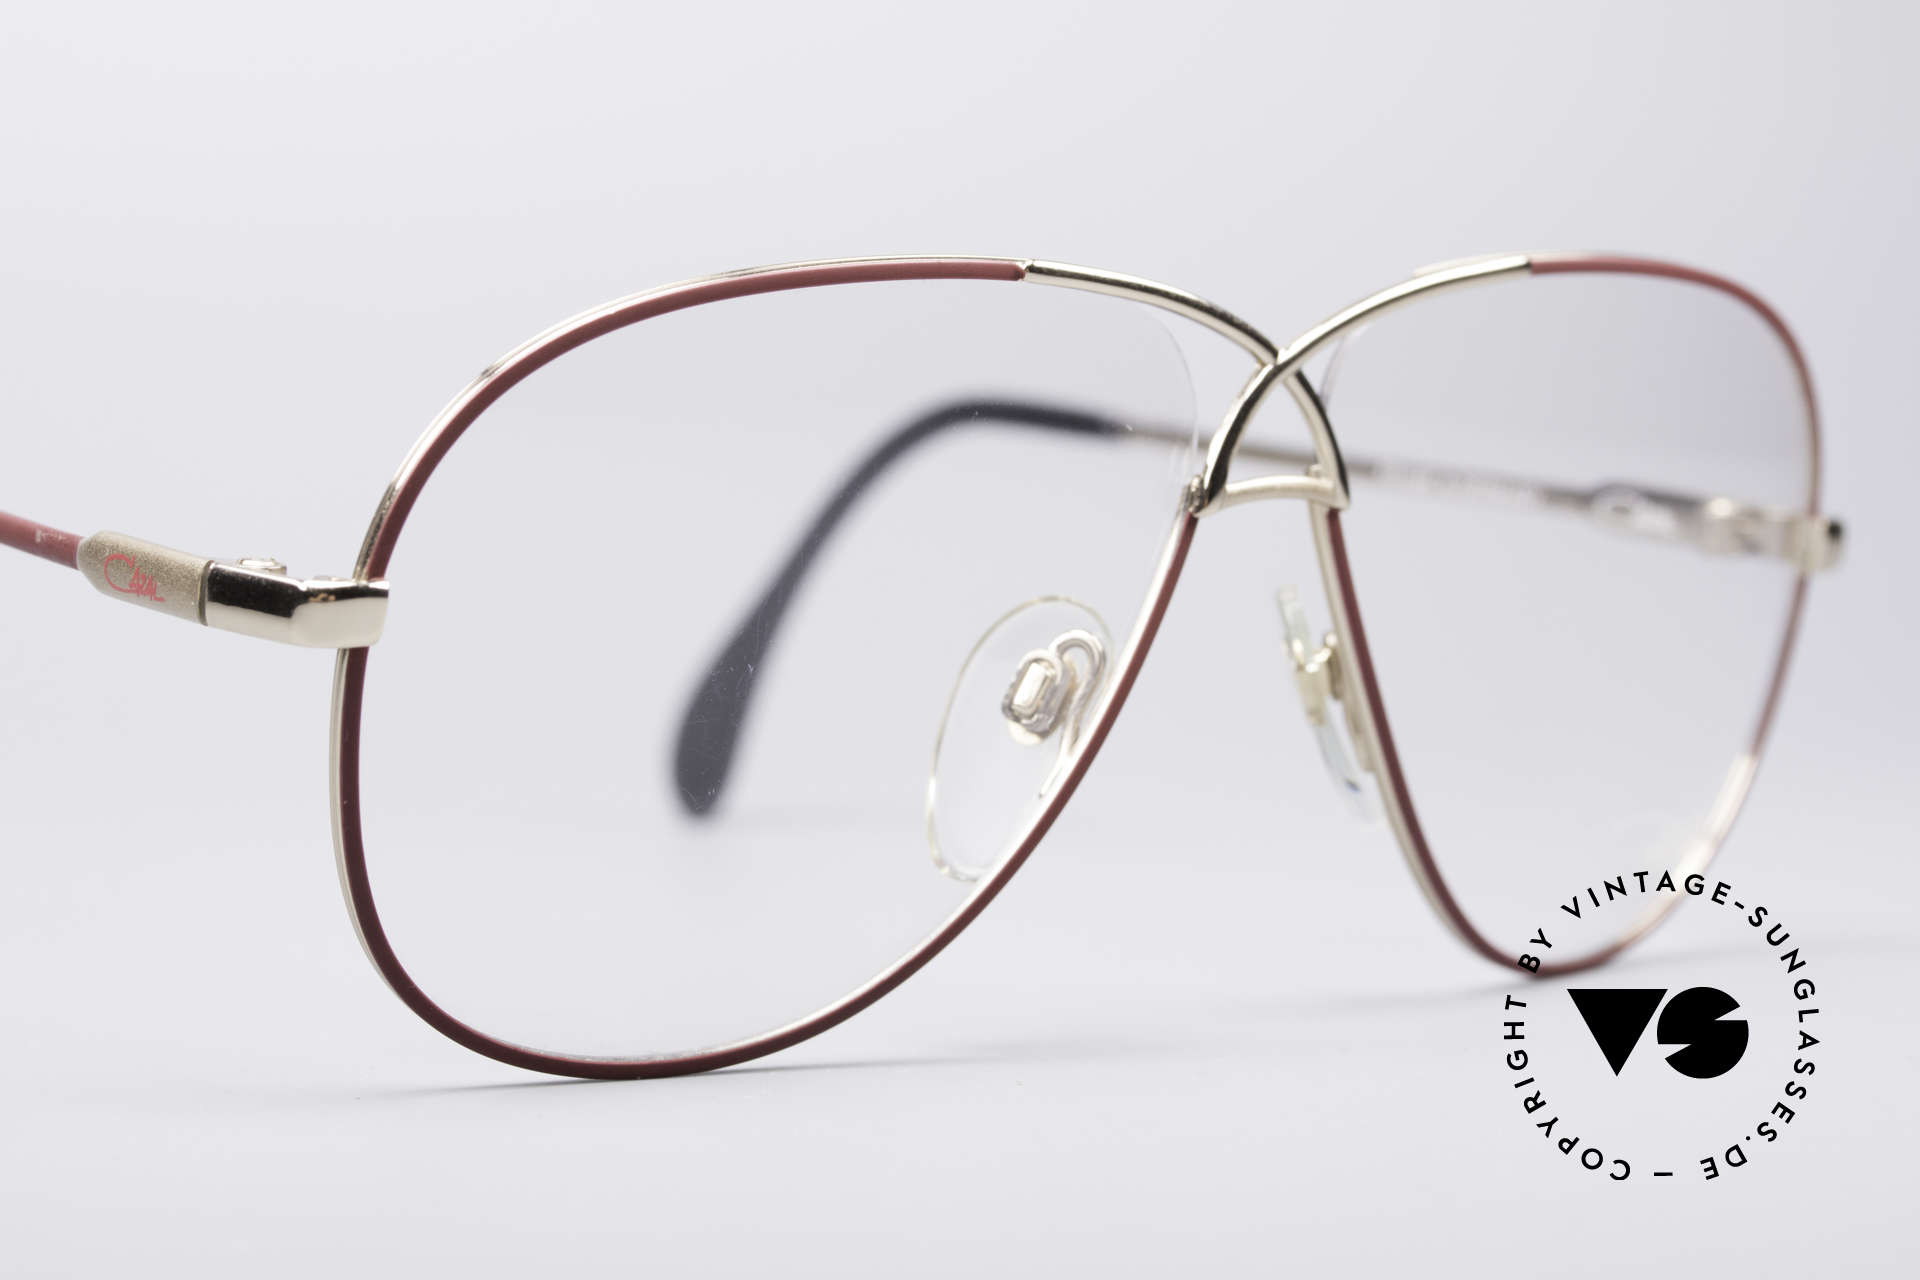 Cazal 728 Aviator Style Vintage Glasses, unworn condition 'new old stock' - truly vintage!, Made for Men and Women